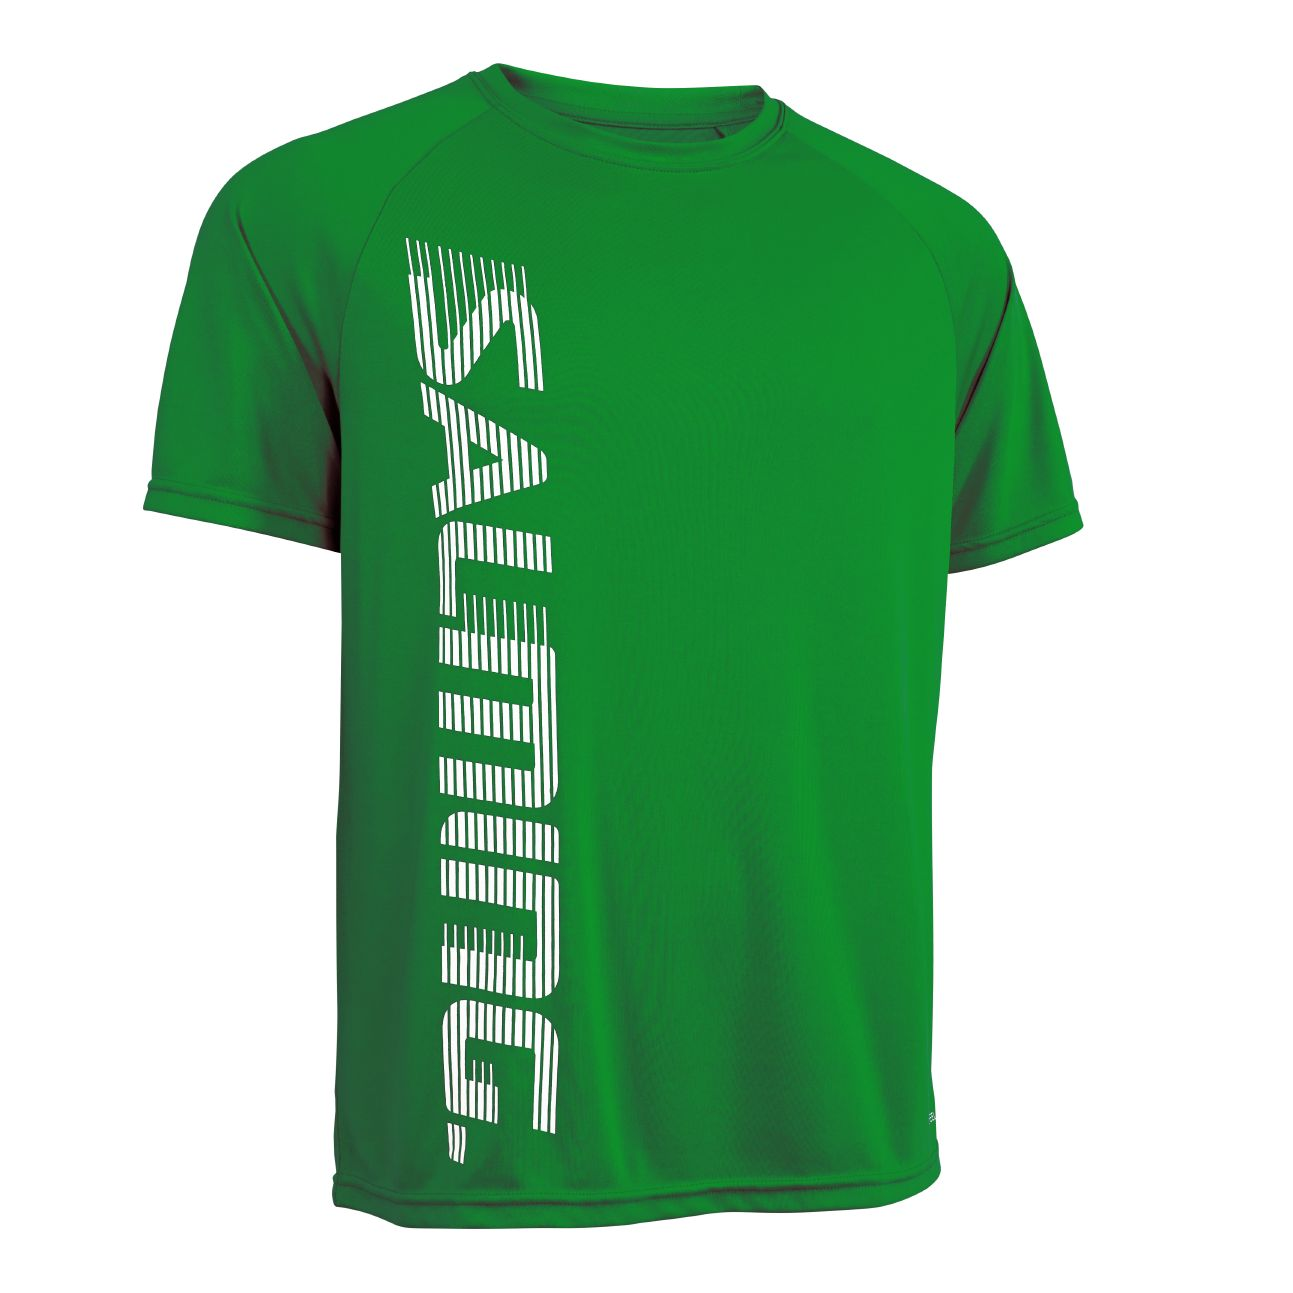 Salming Training Tee 2.0 Červená, 140